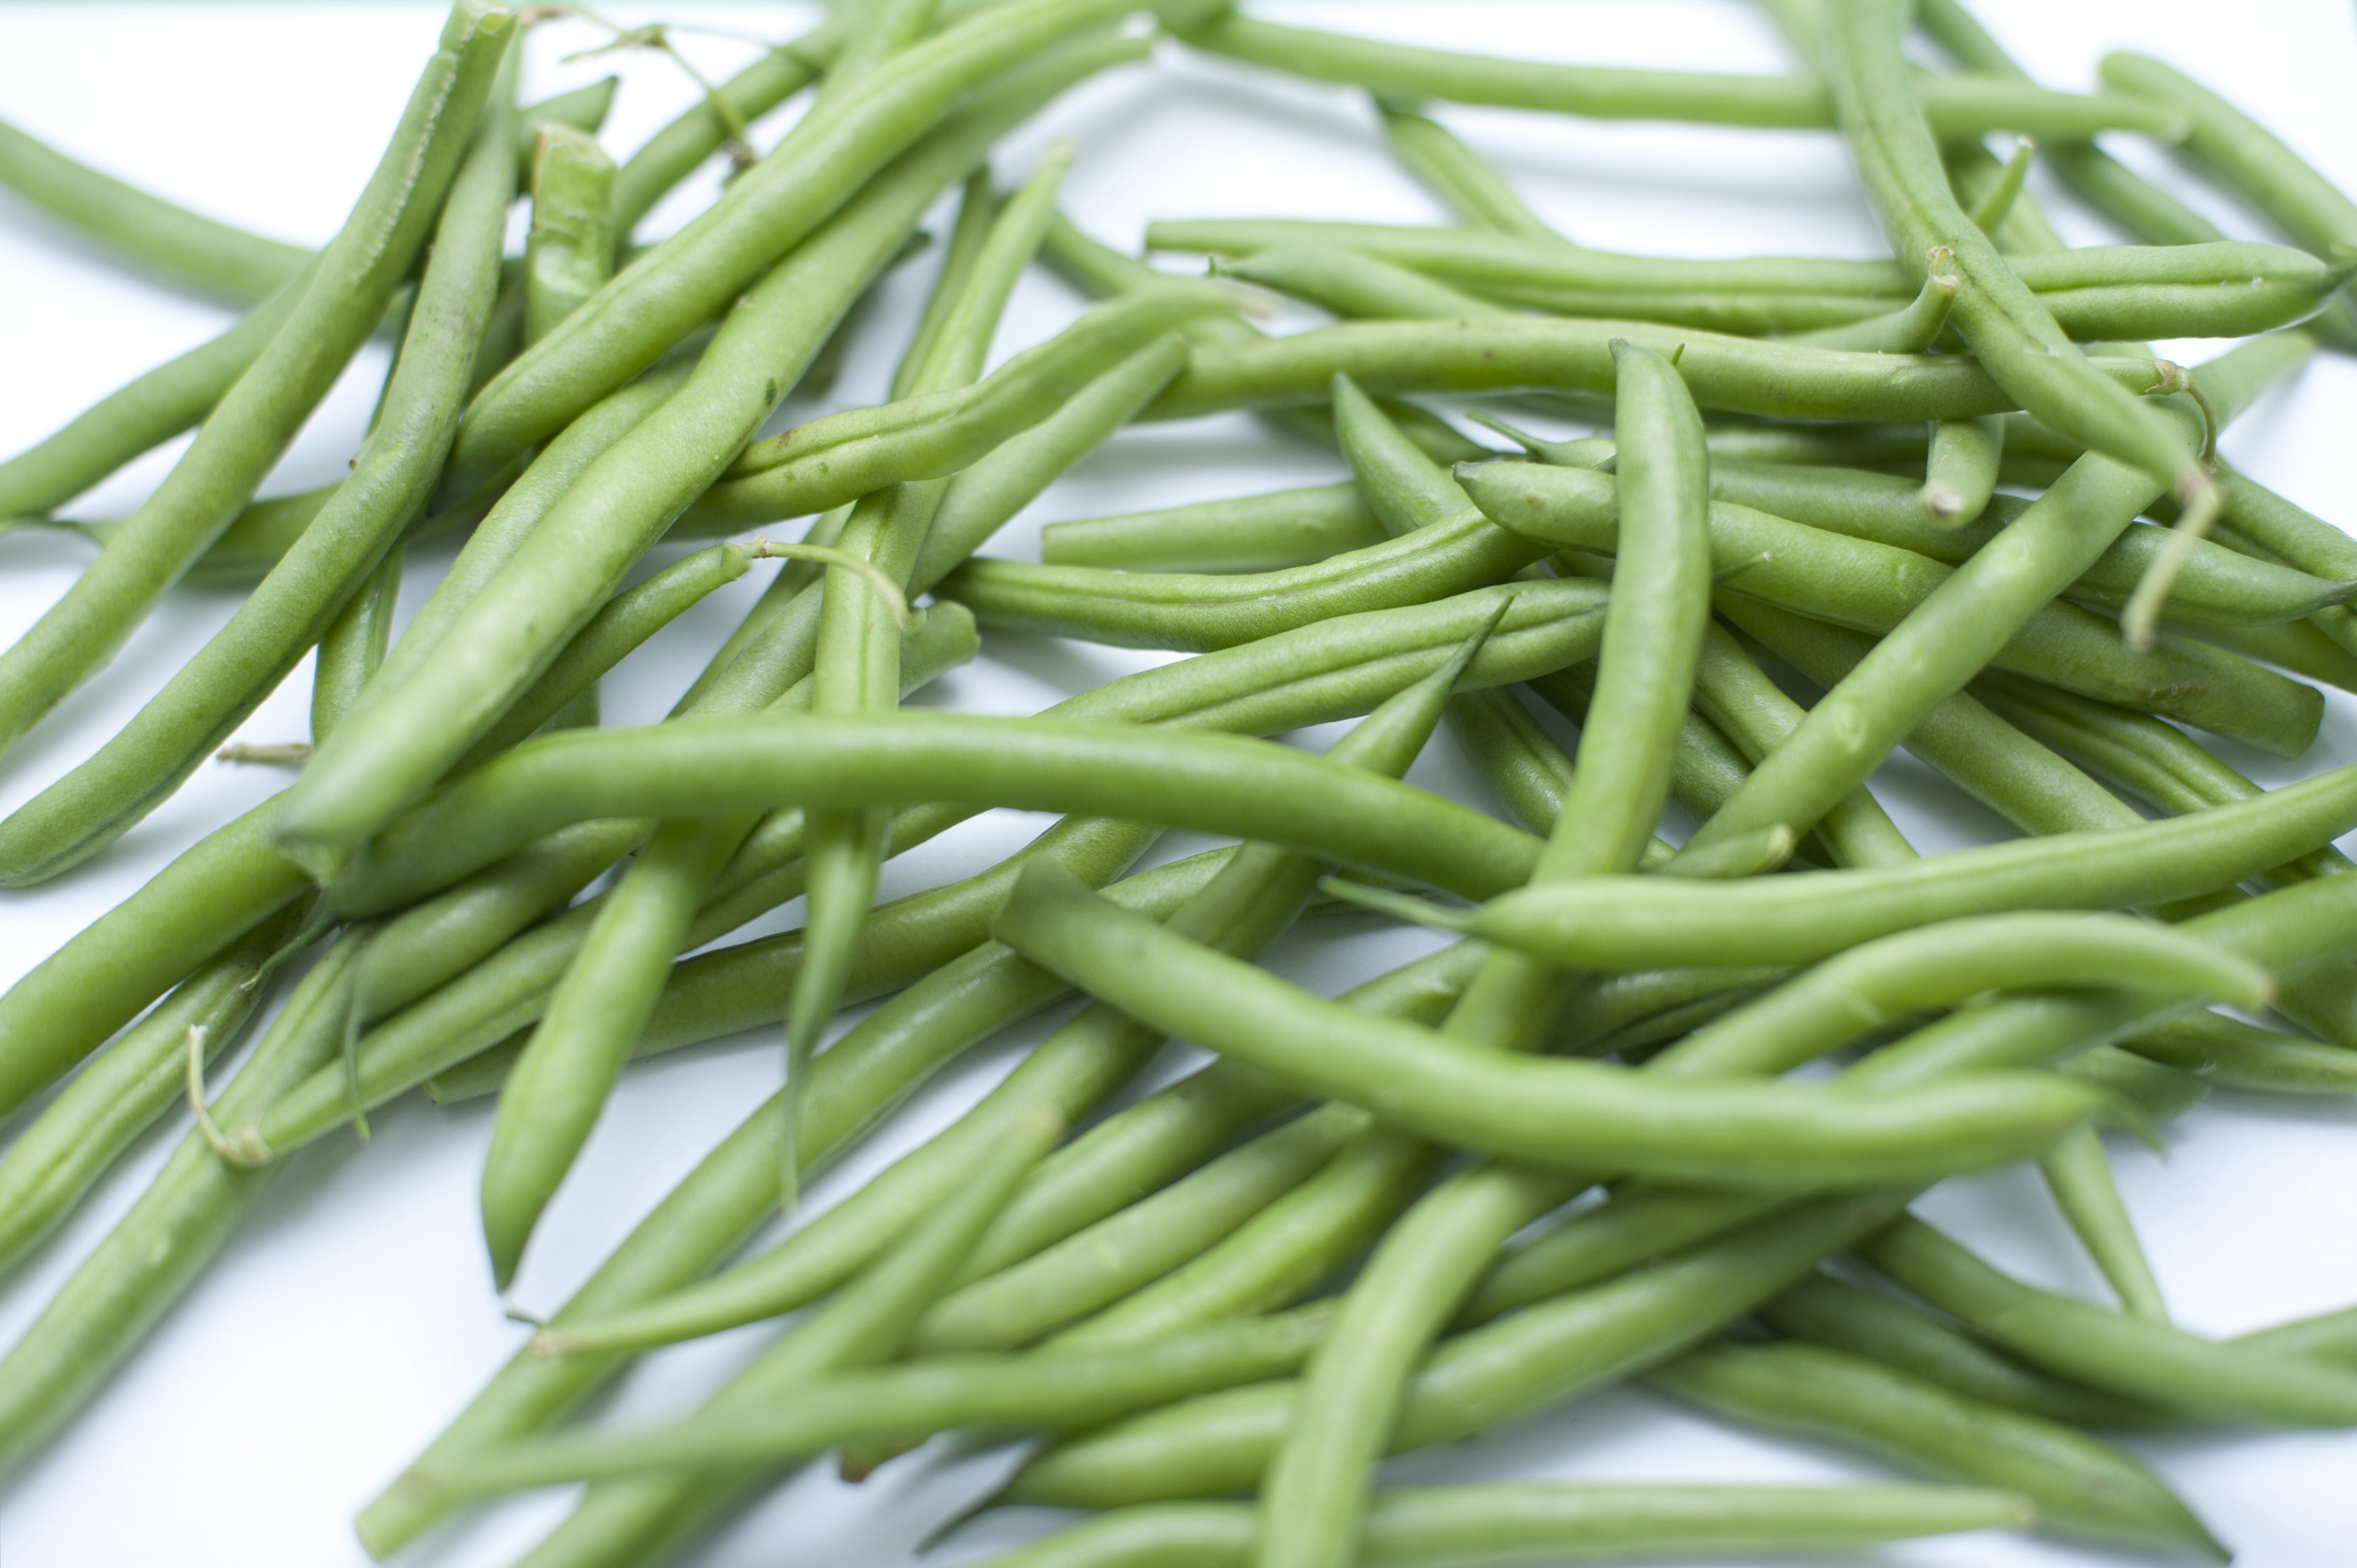 Assortment of Fresh Picked Green Snap Beans from Garden on White Background